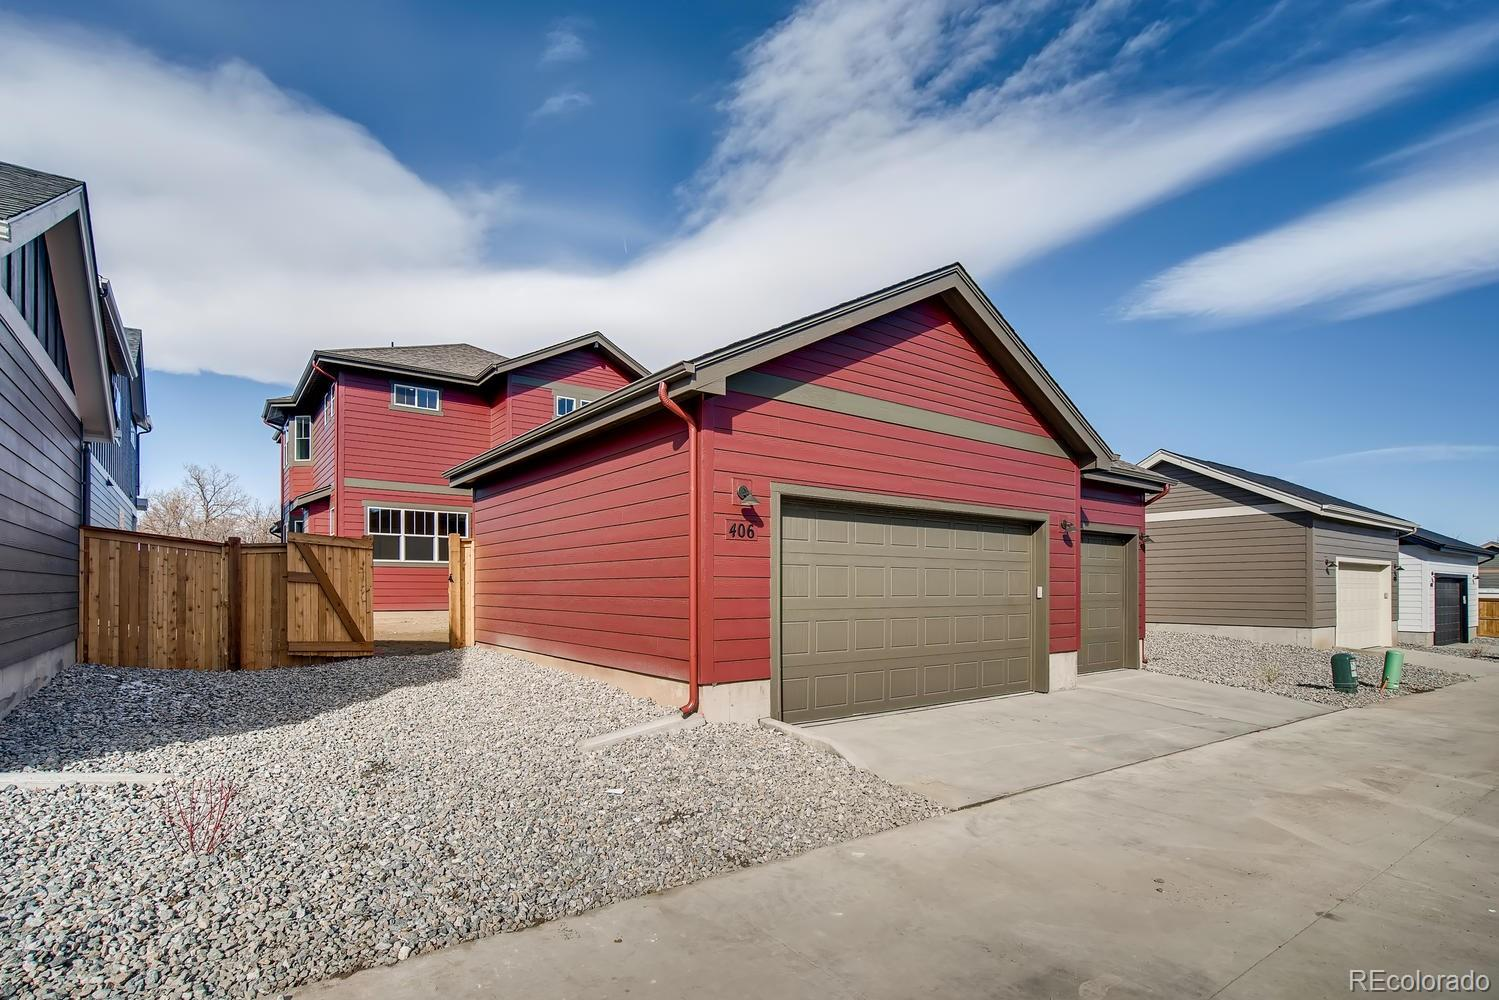 MLS# 5930987 - 35 - 406 S 2nd Avenue, Superior, CO 80027